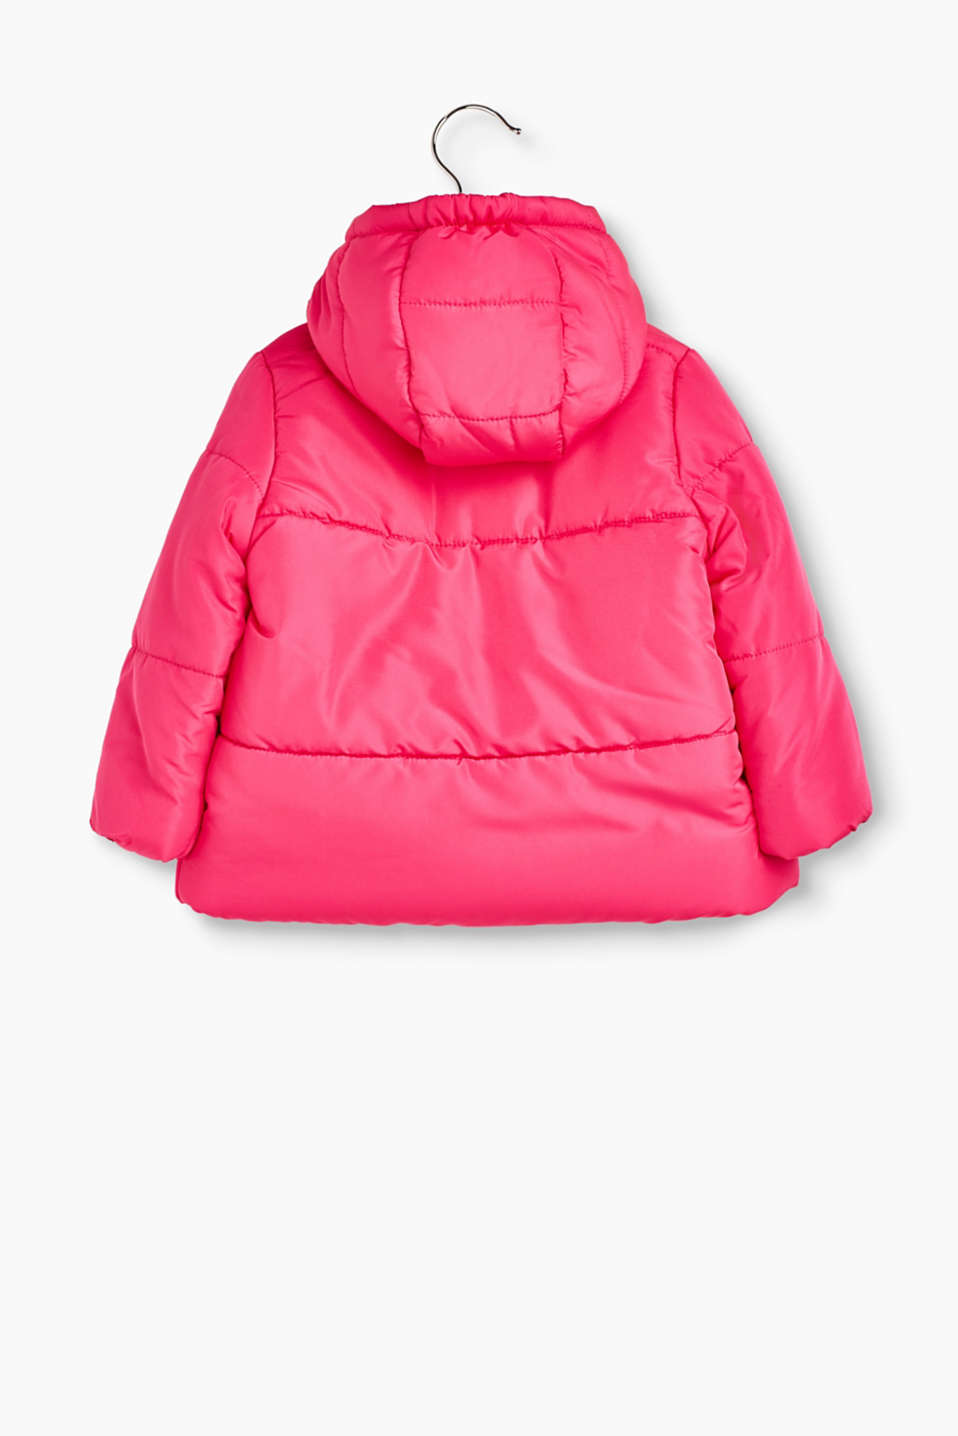 Quilted jacket with a hood and fleece lining